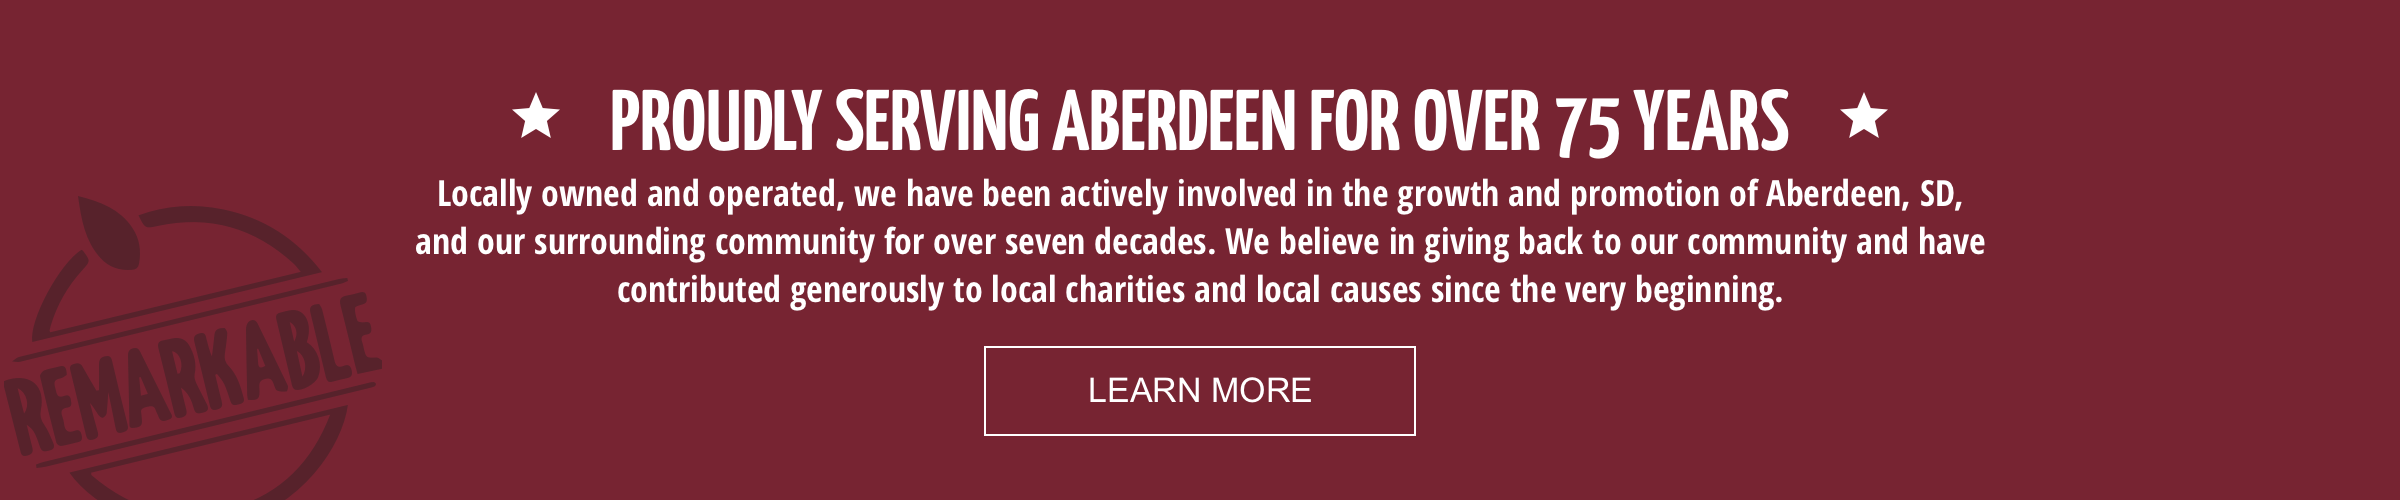 PROUDLY SERVING ABERDEEN FOR OVER 75 YEARS | Kessler's